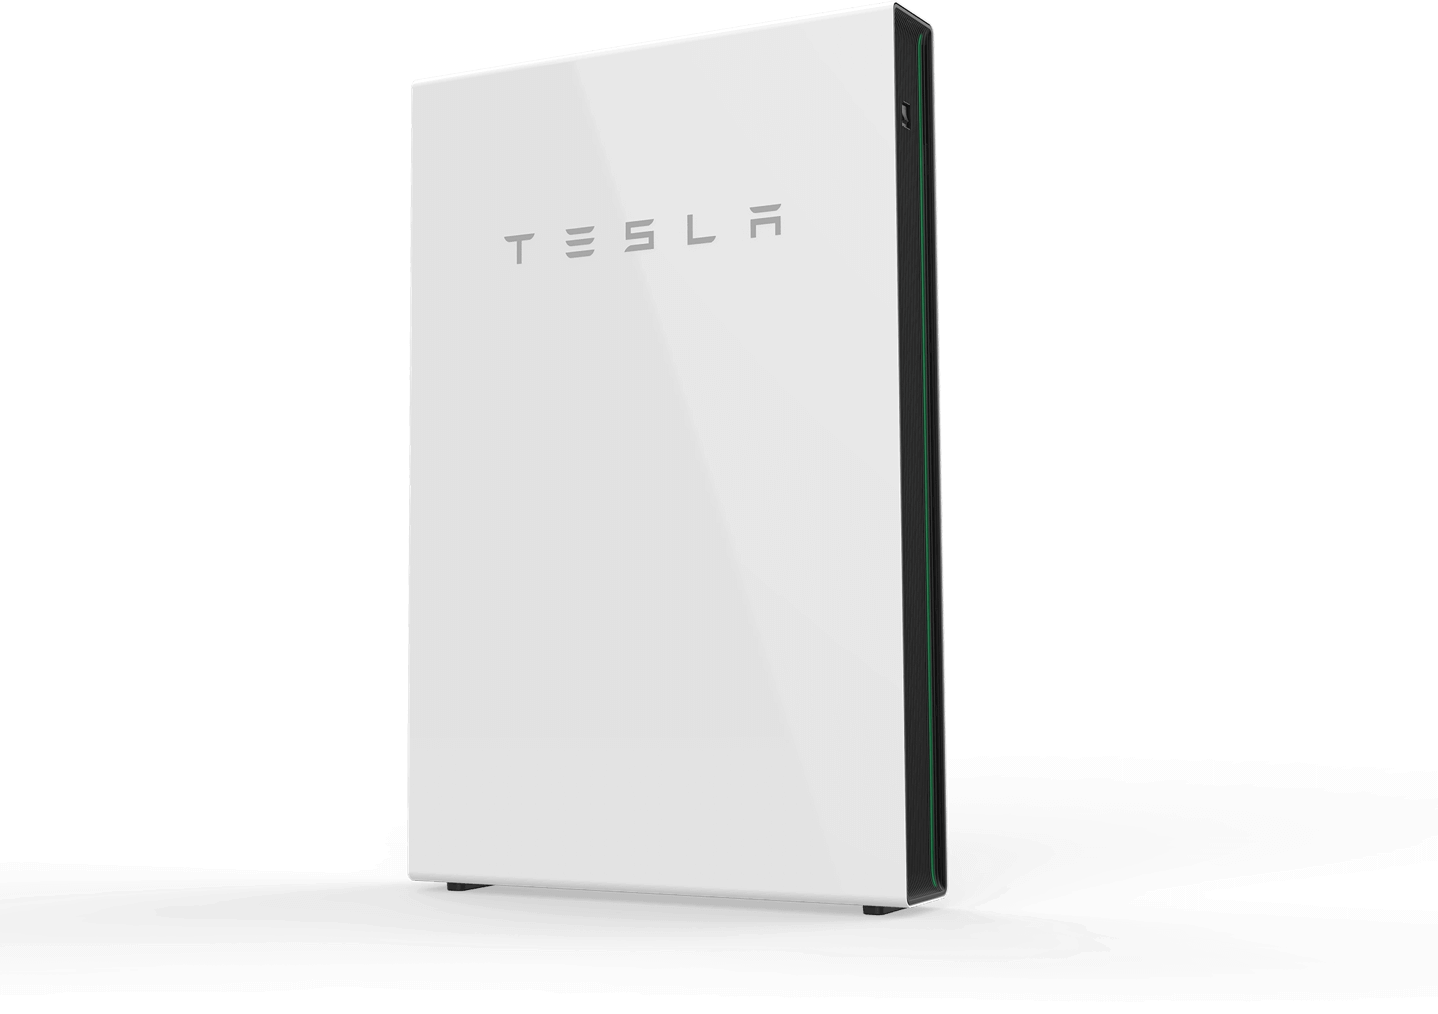 Tesla's Powerwall 2 in Australia - Advice for shoppers